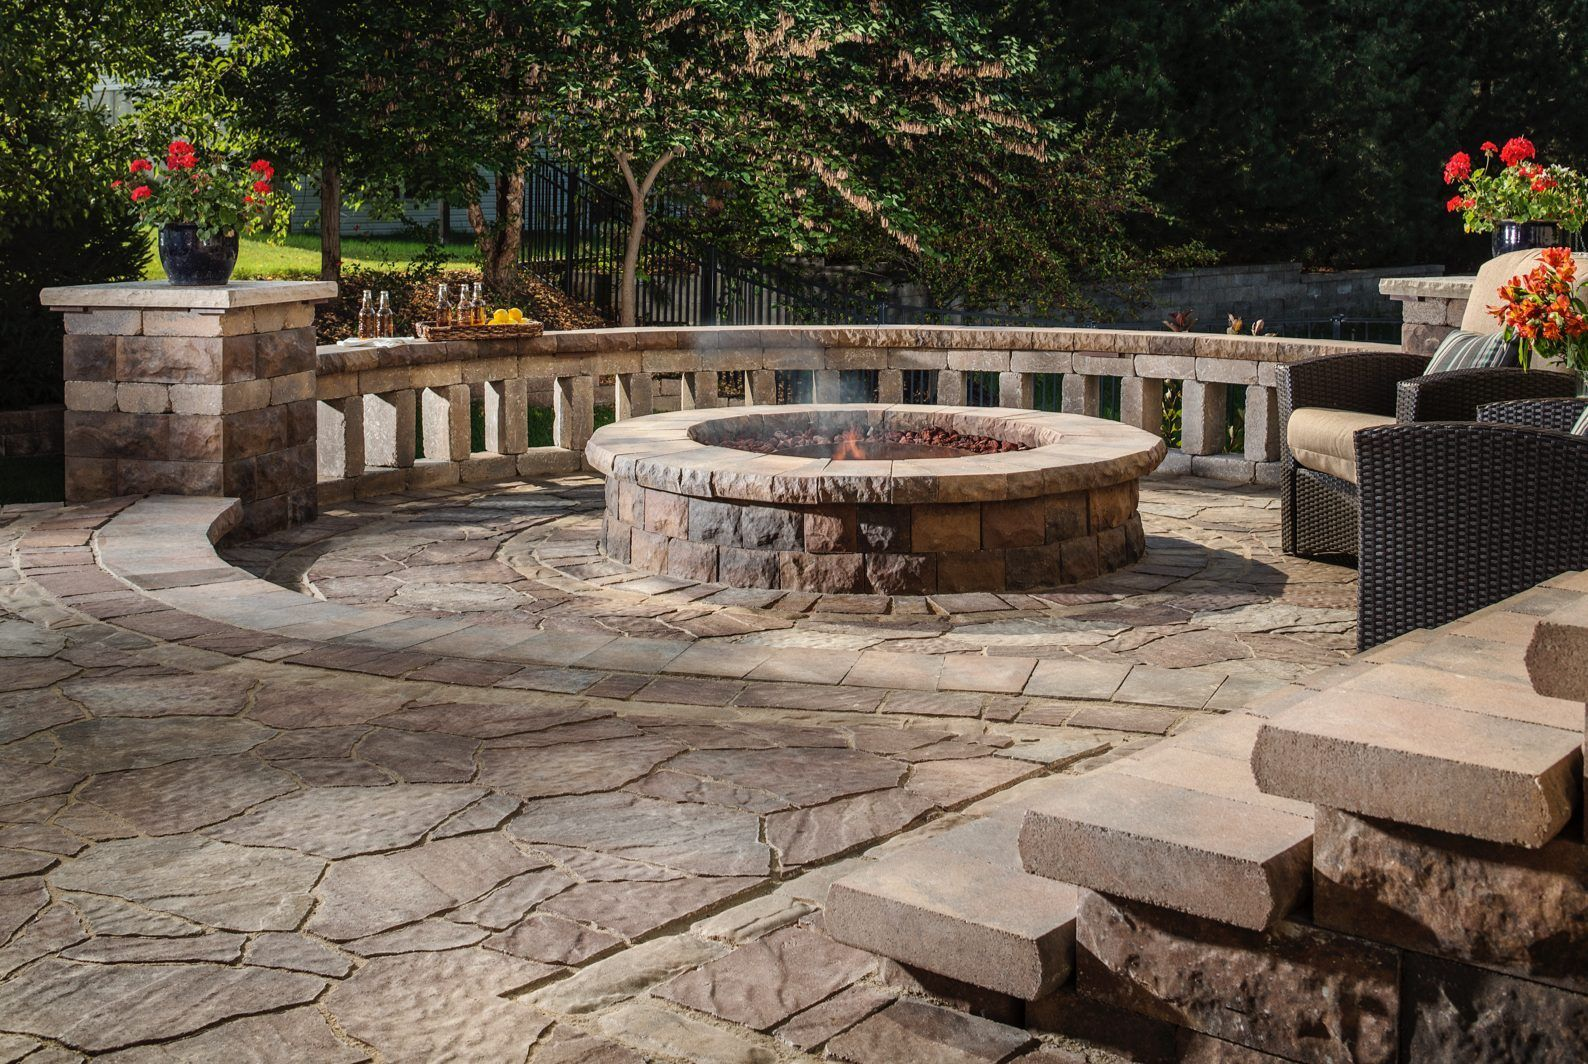 the decorative wall surrounding this fire pit uses mediterranean